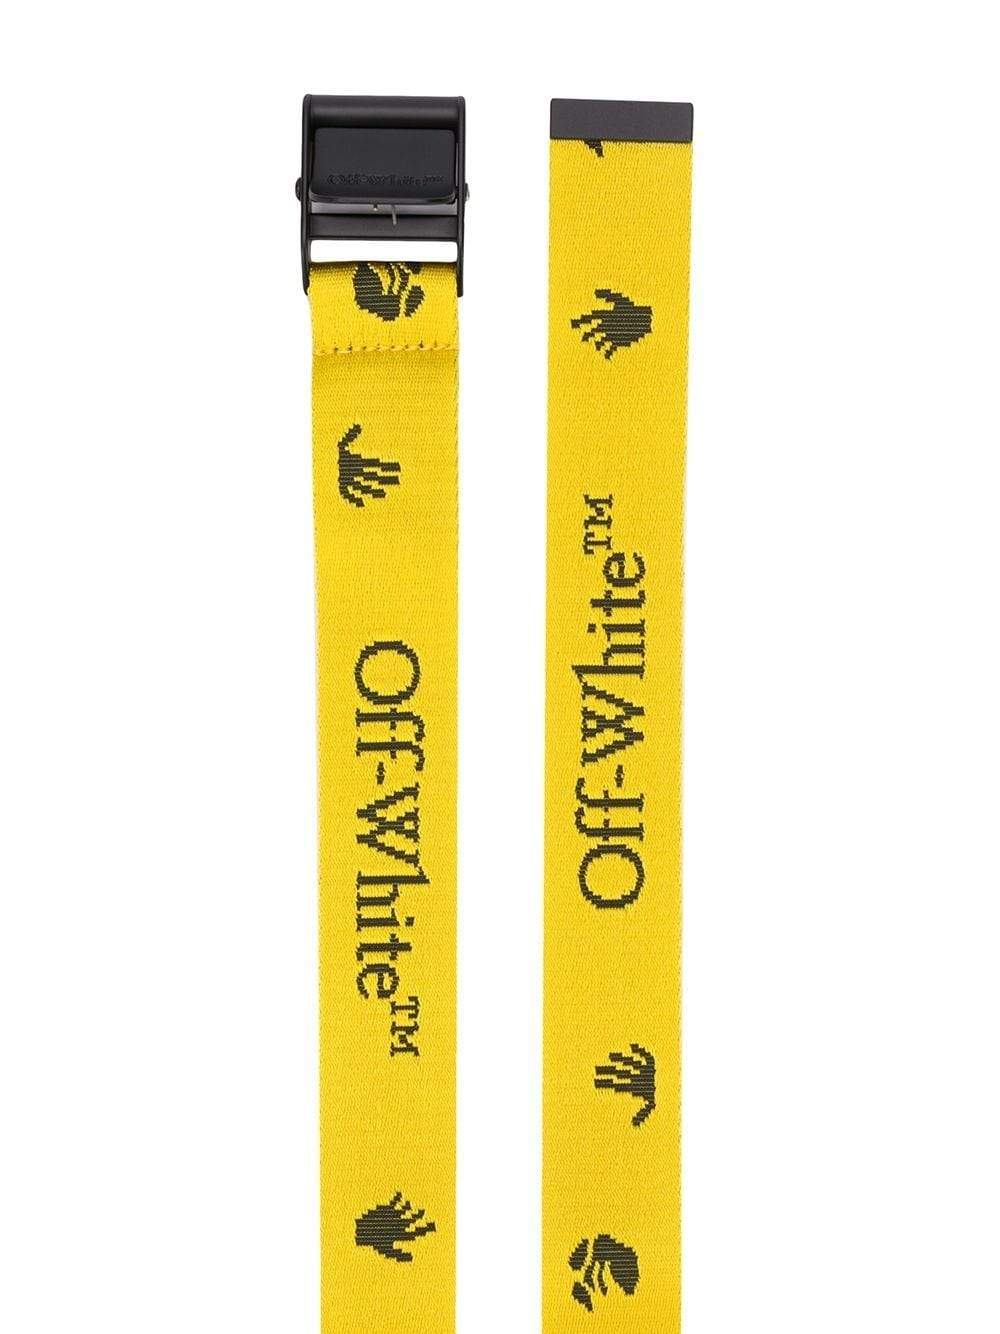 OFF-WHITE new logo industrial yellow/black